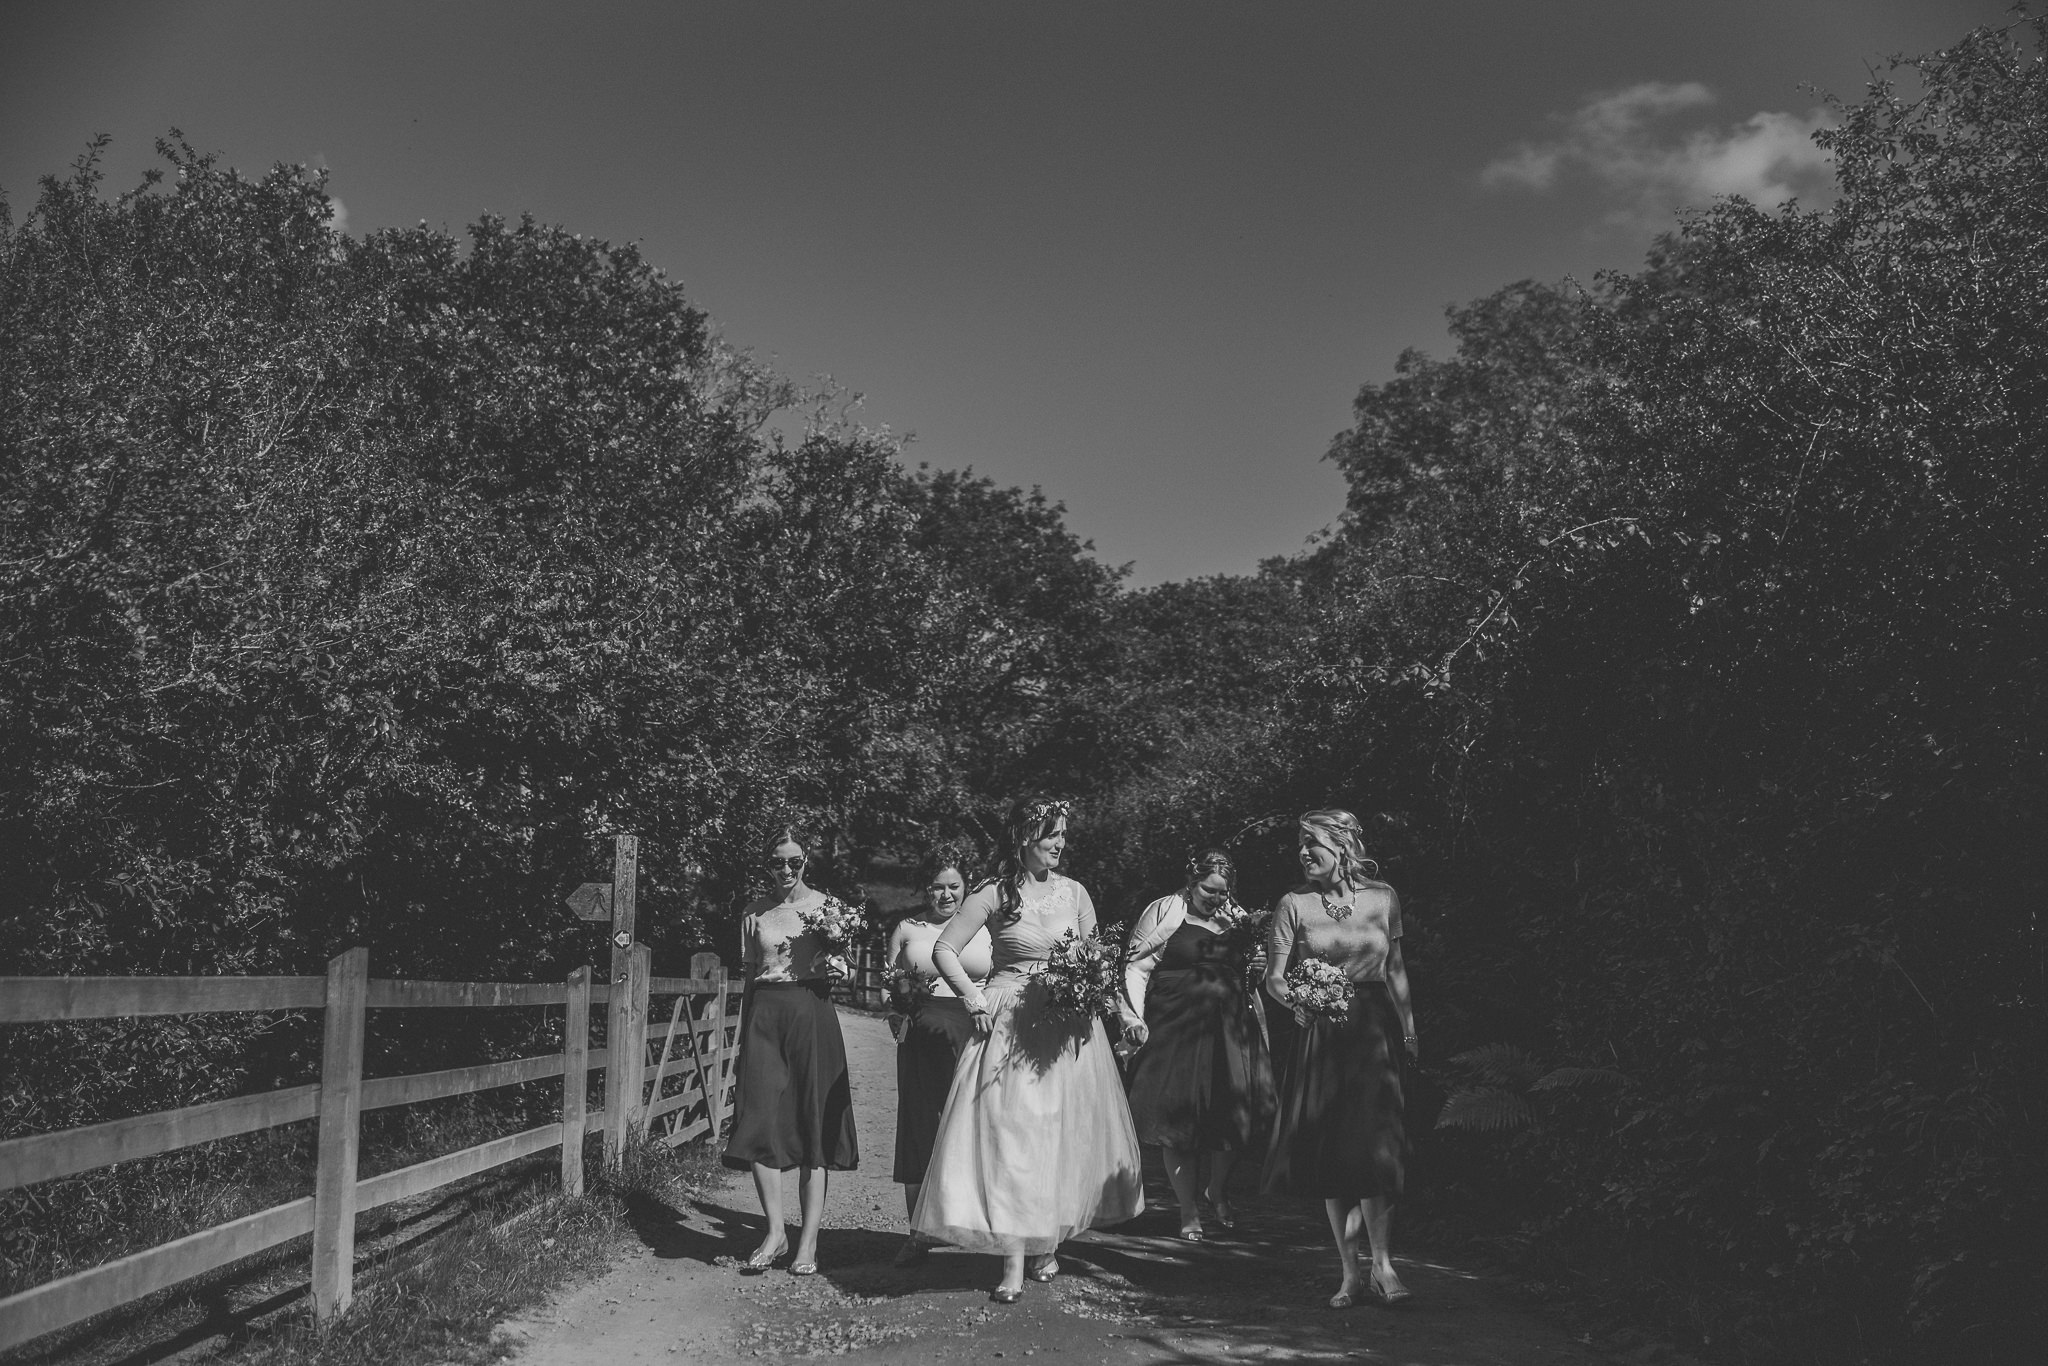 paul-marbrook-Fforest-Wedding-Photographer-90026